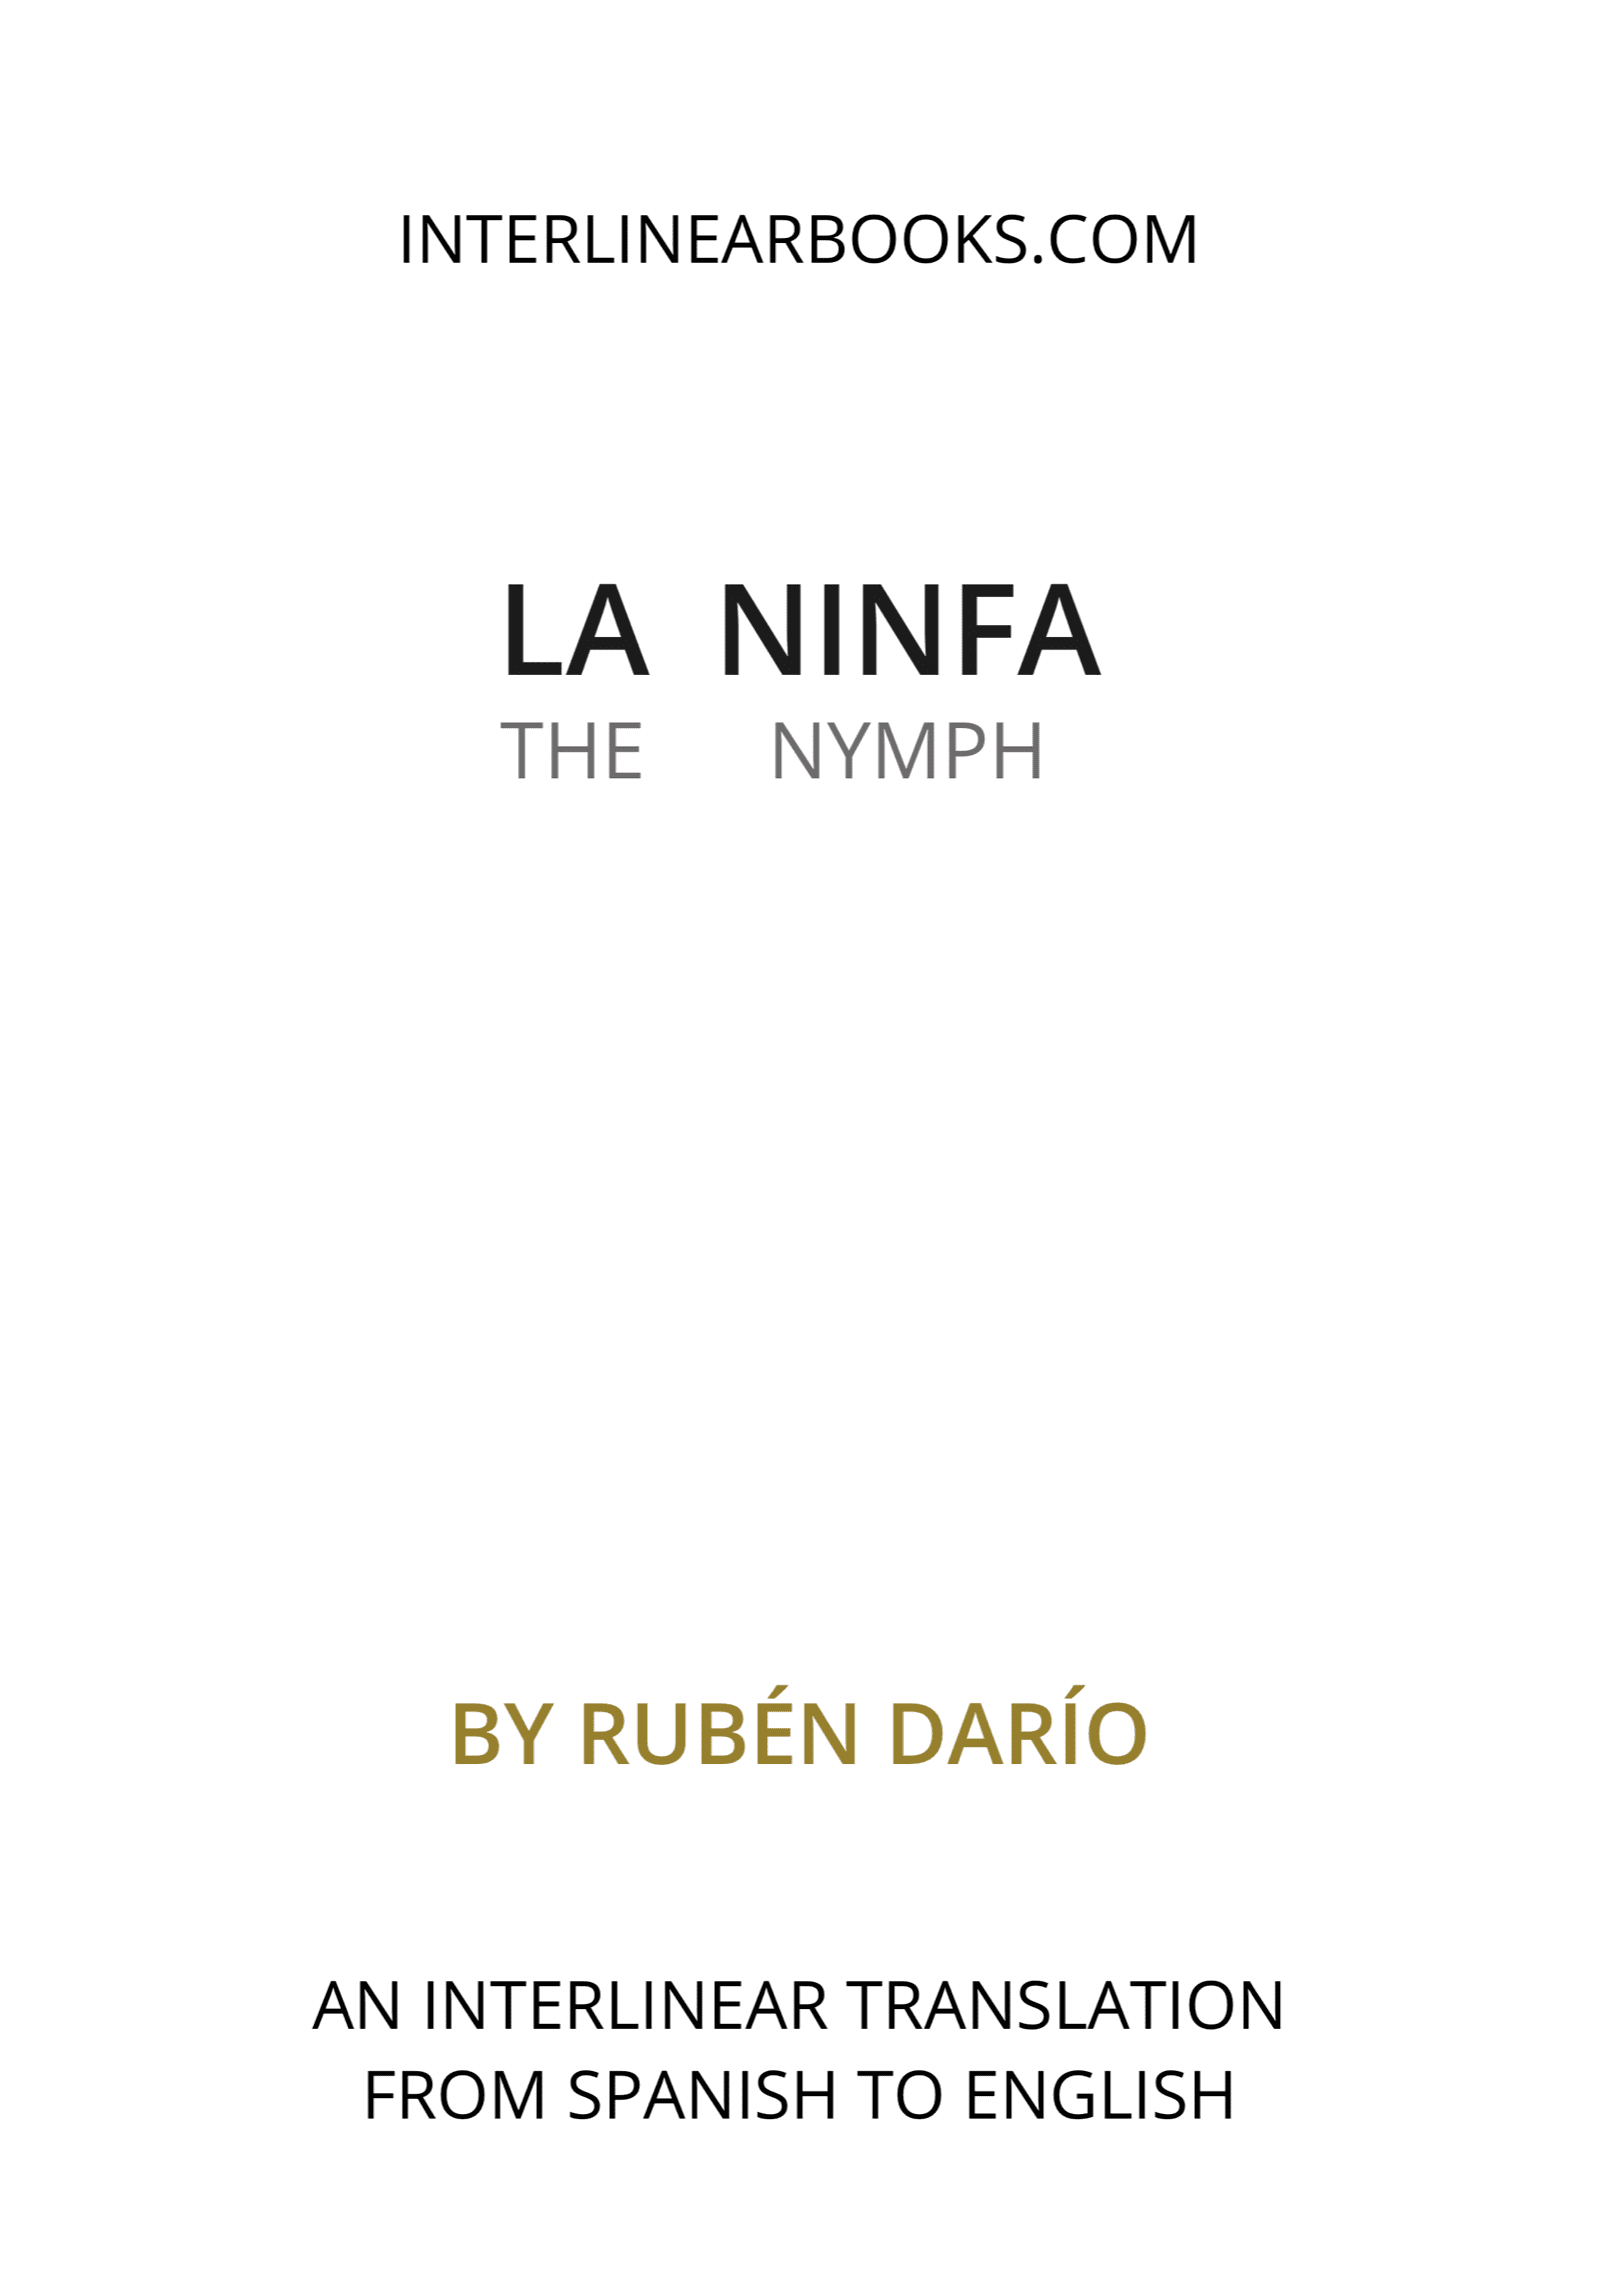 Spanish book: La ninfa / The Nymph